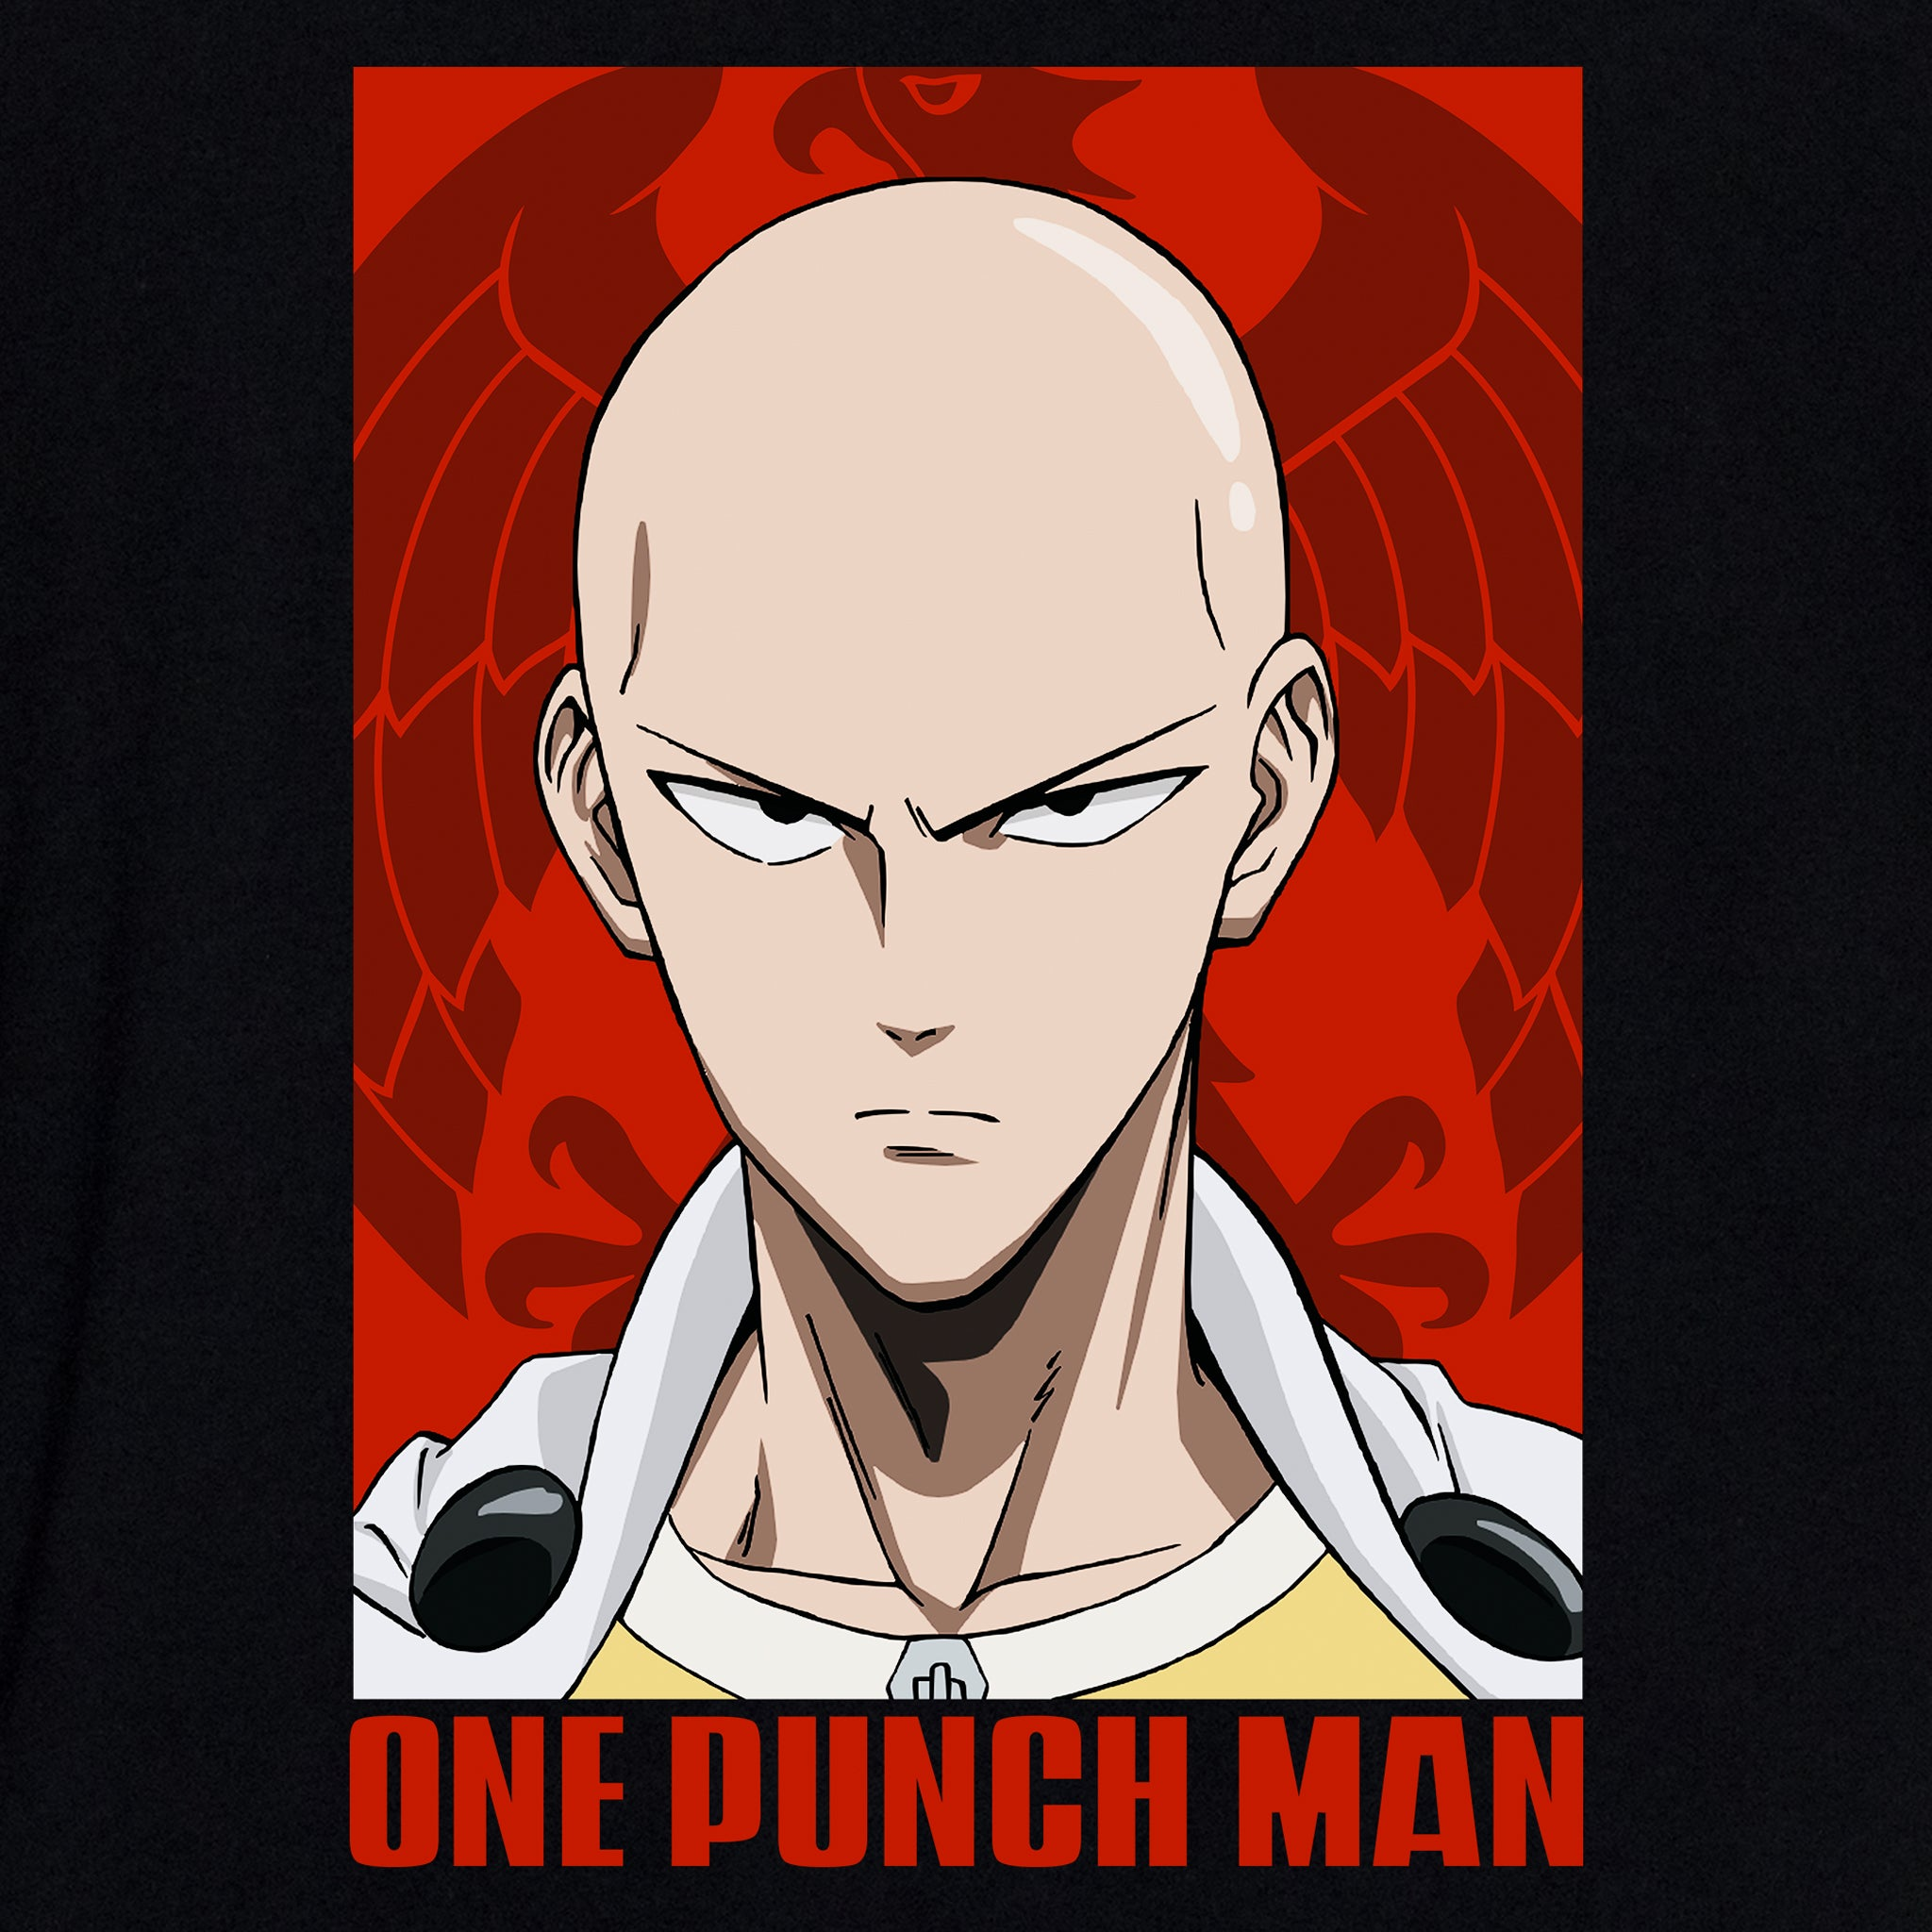 one punch man saitama anime face graphic apparel t-shirt shirt culturefly